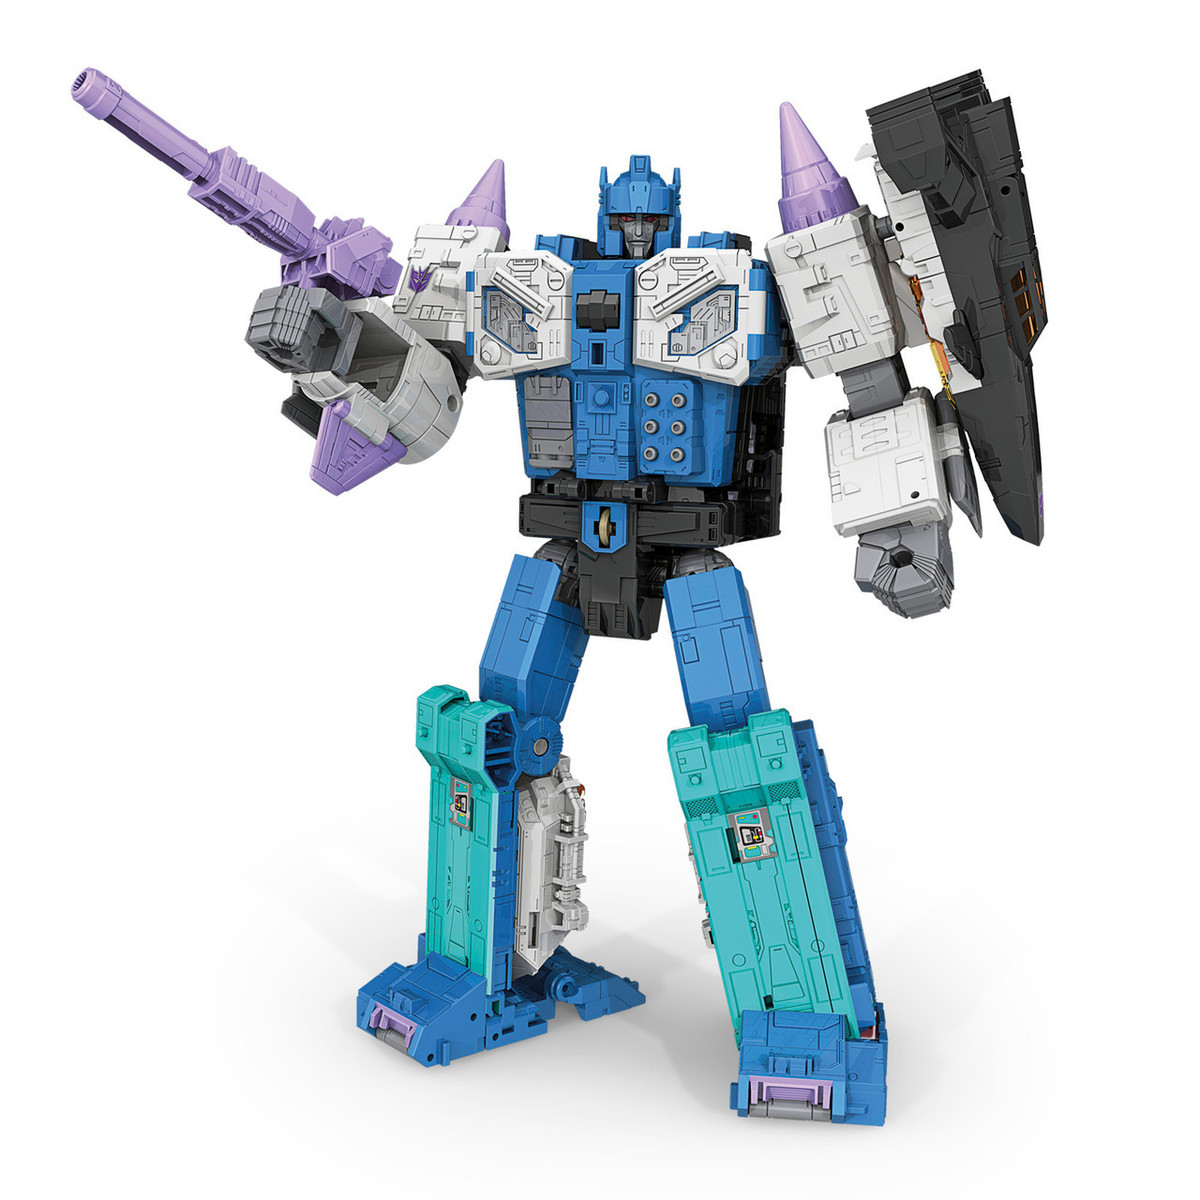 Decepticon Overlord /& Dreadnaut Transformers Generations Leader Titans Return!